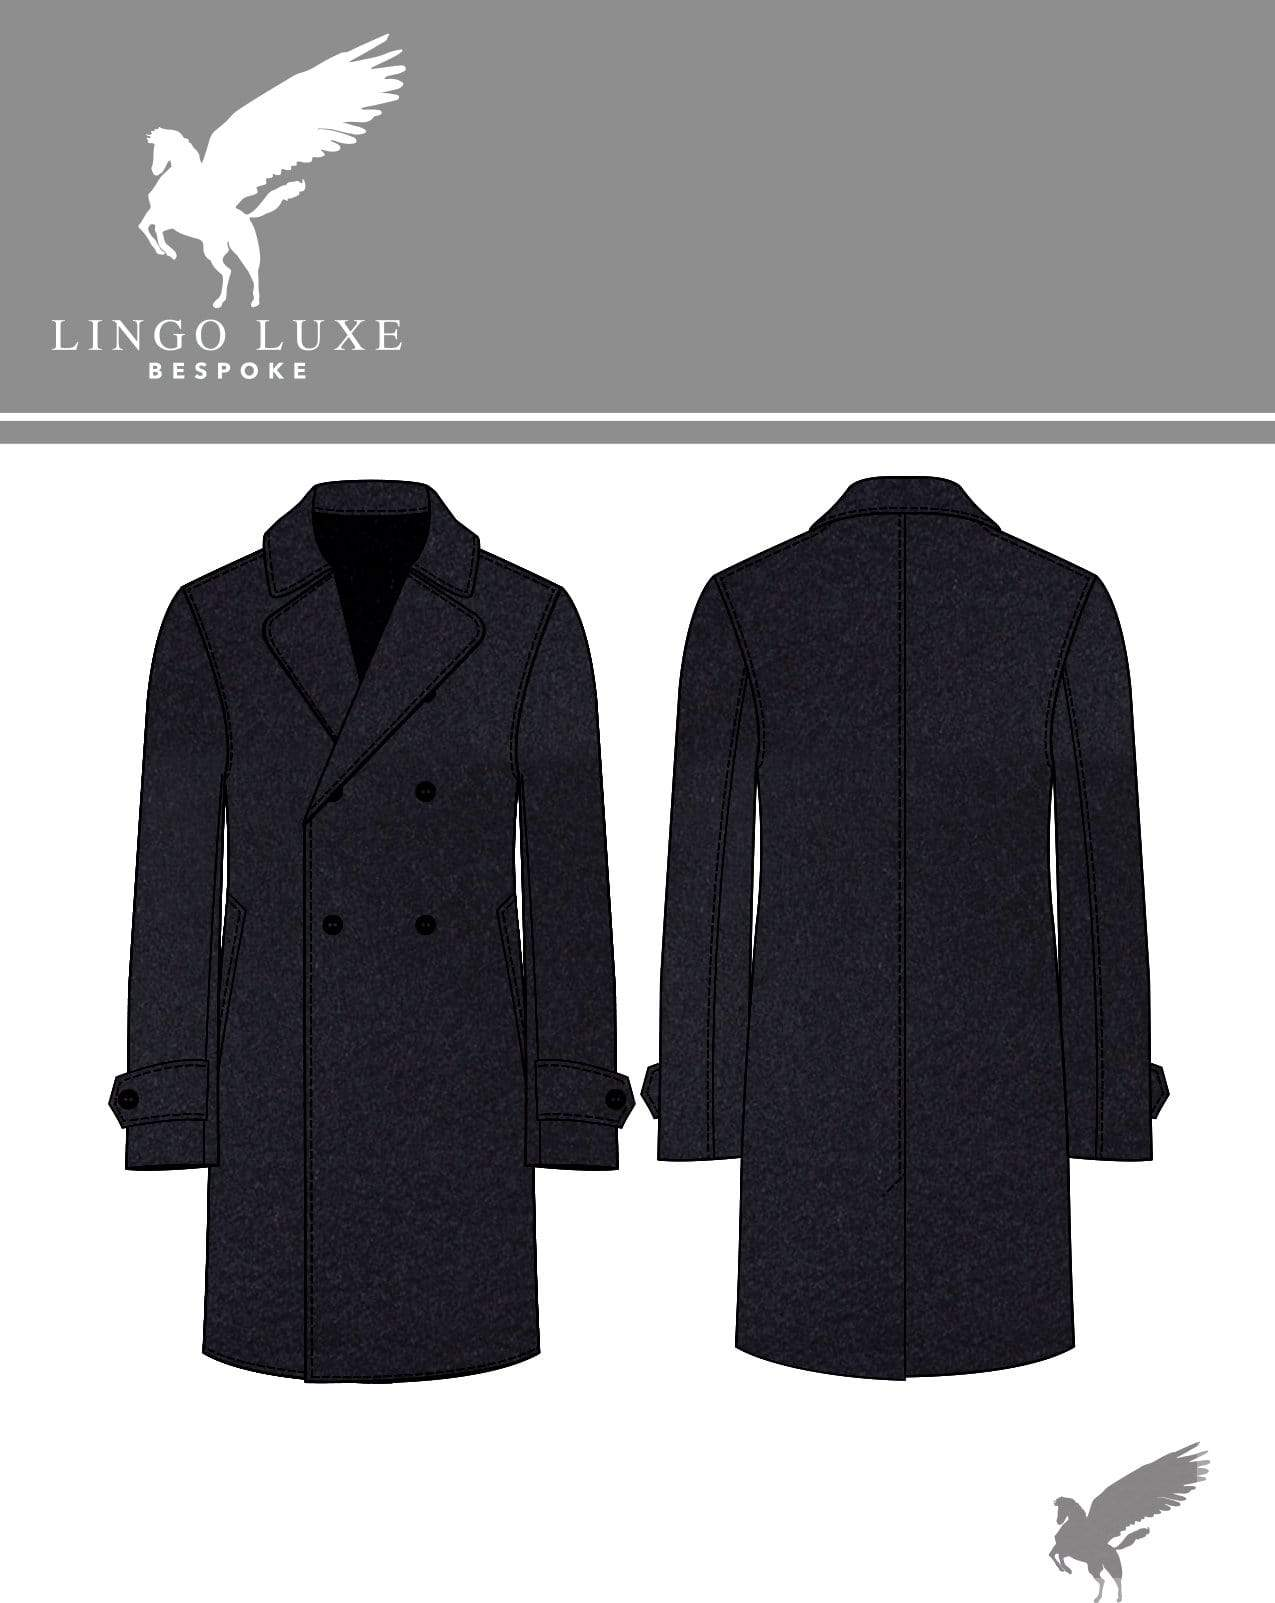 Outerwear | Lingo Luxe The Stately Overcoat | Rich Navy-Lingo Luxe Bespoke